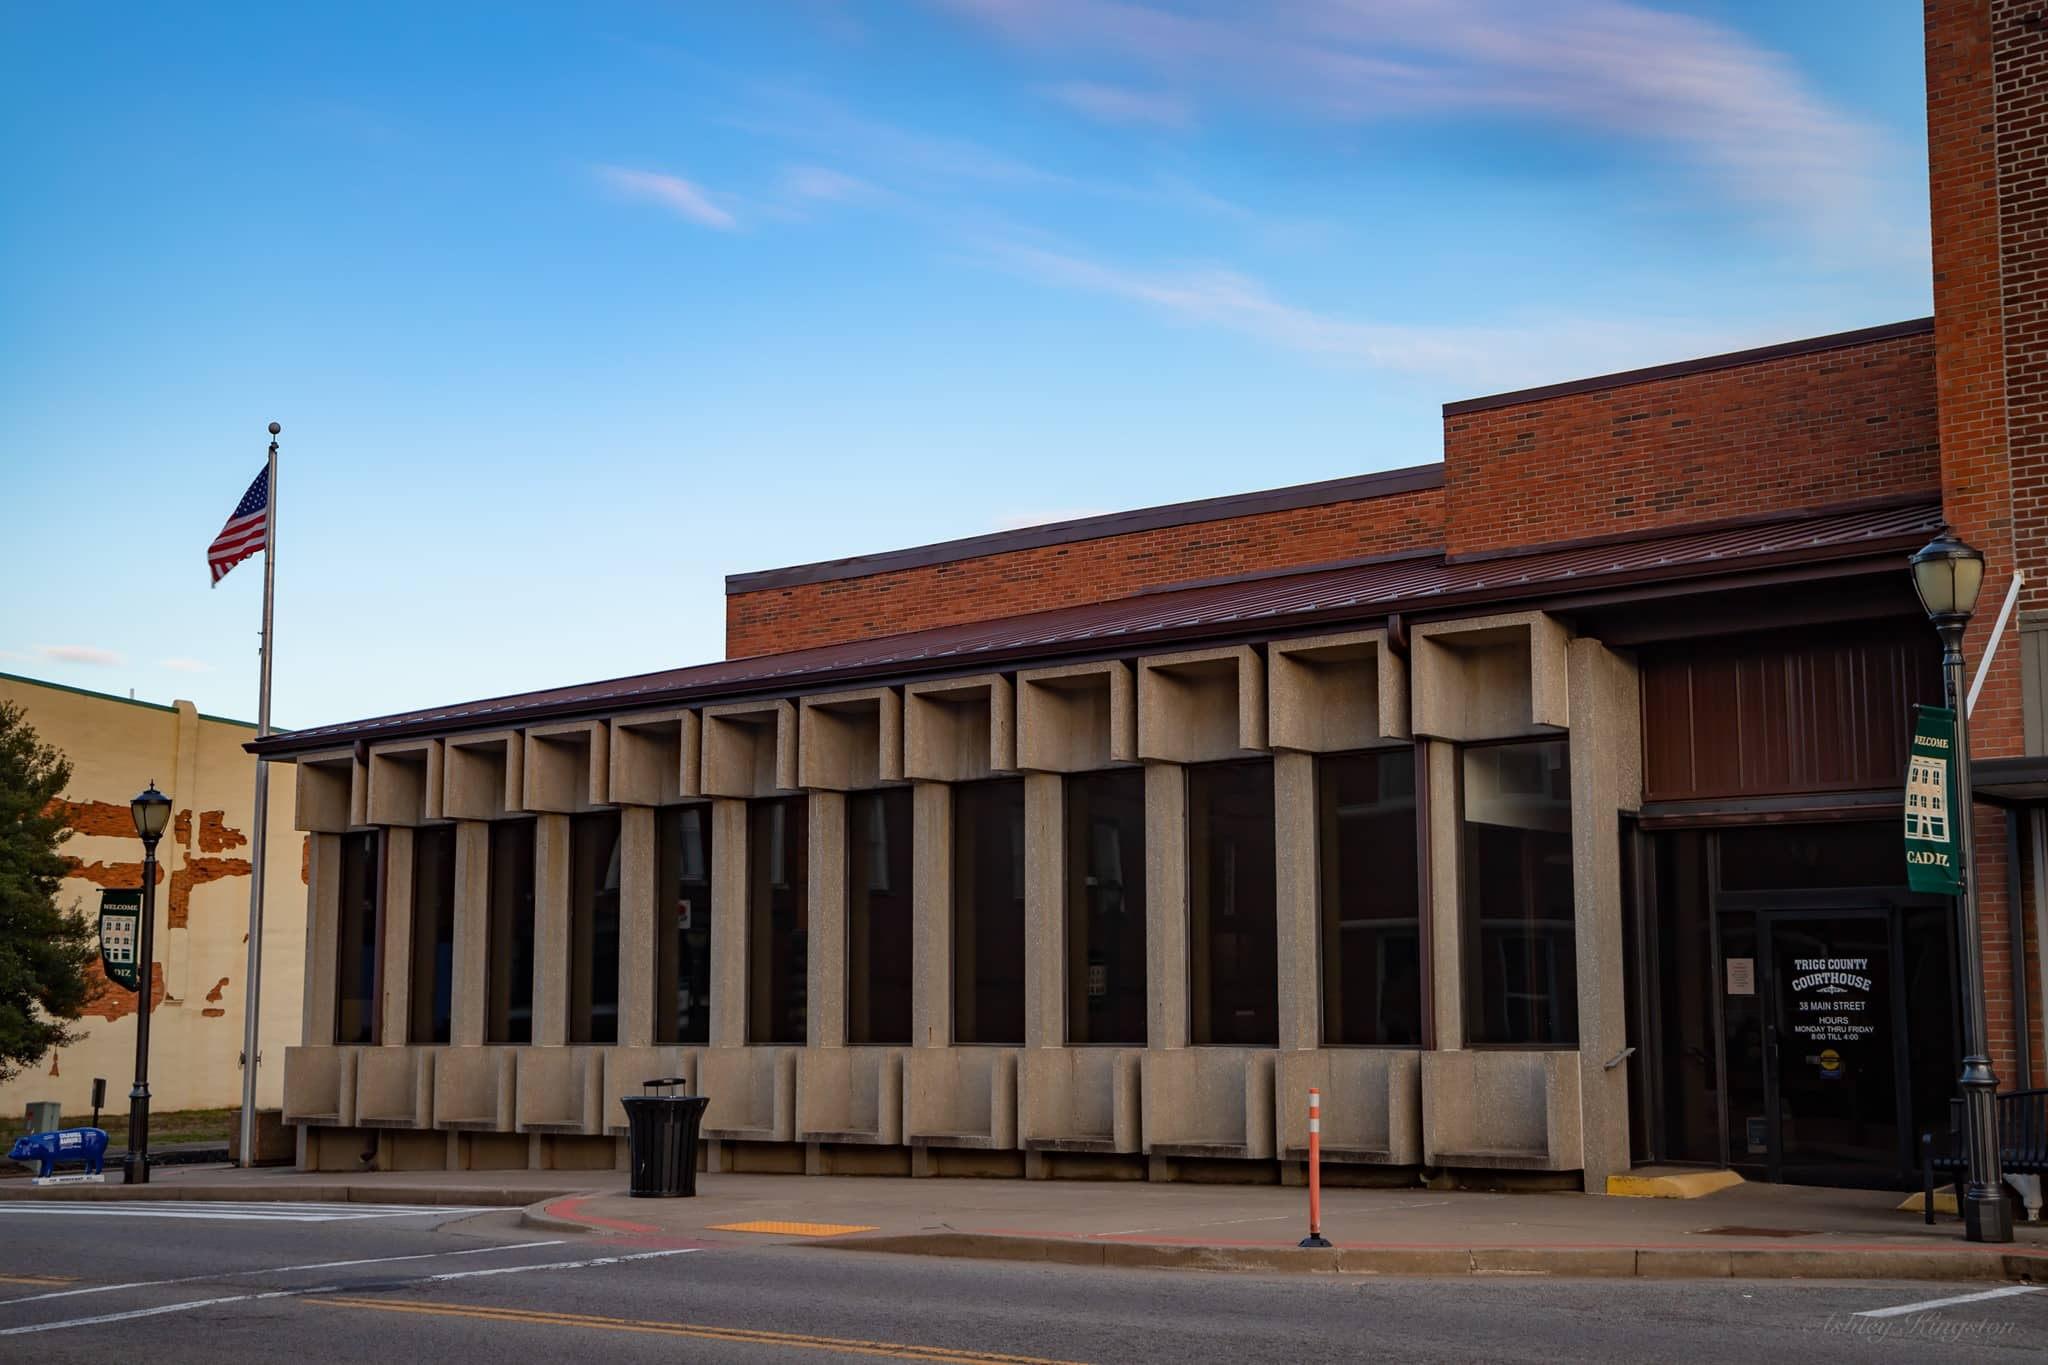 Magistrates Approve Lower Speed Limit For Kings Chapel for Lane County Circuit Court Schedule September 10 2022